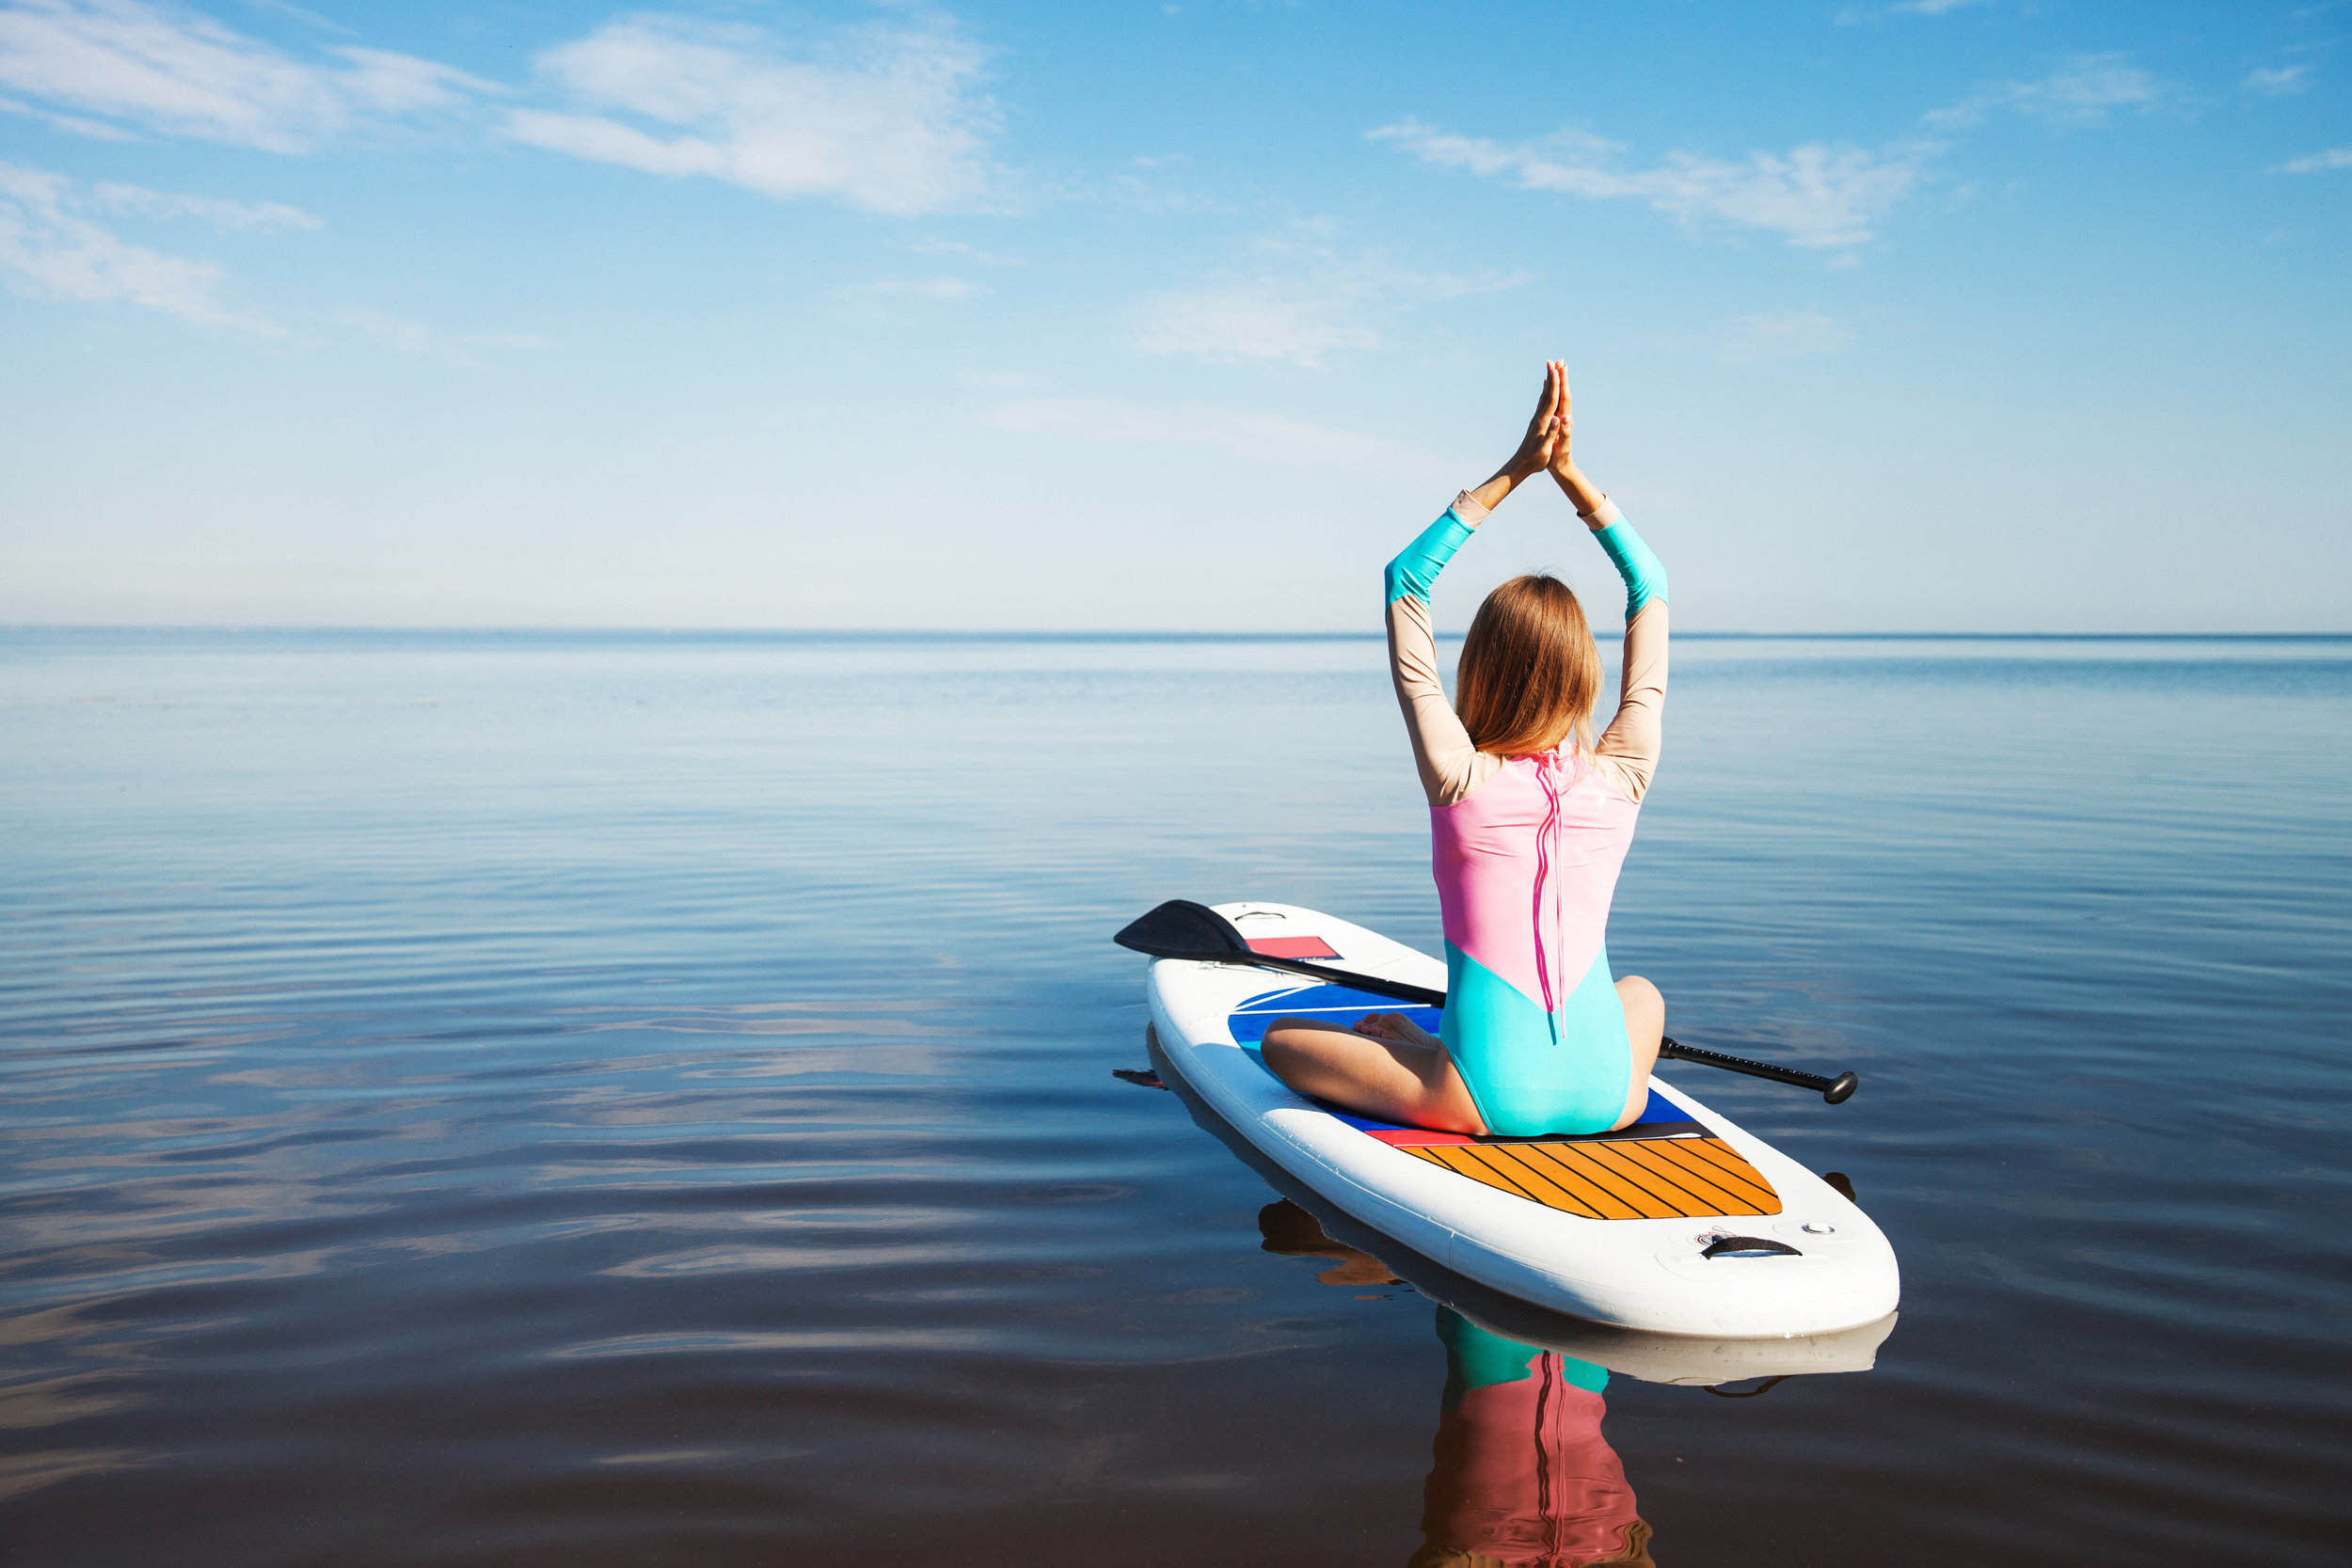 SUP Yoga - 11:00 am to 12:30 pm